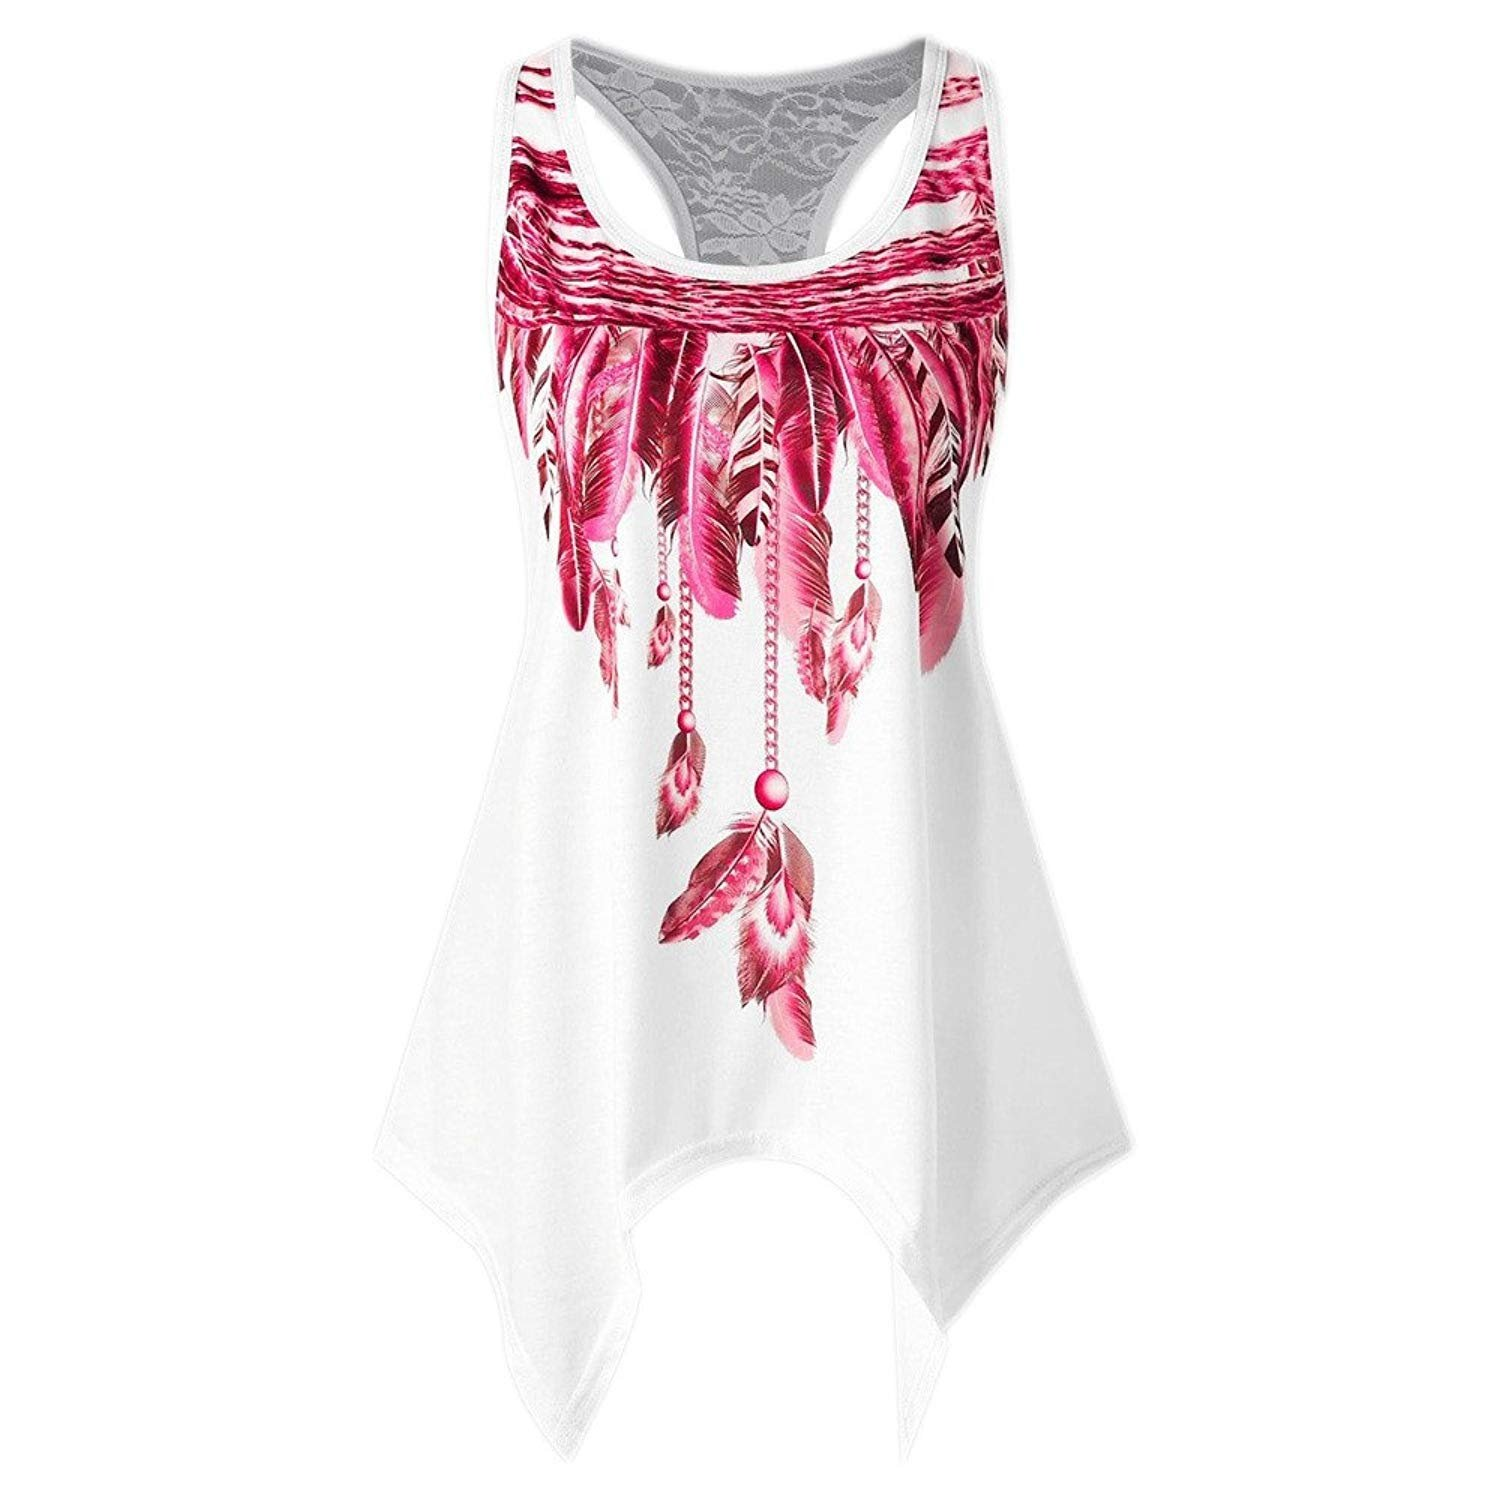 POTO Tank Tops for Women,2018 Fashion Summer Sleeveless Asymmetrical Feather Print Vest Crop Top Blouse Shirts Camisoles (S, Style 1 : Red)